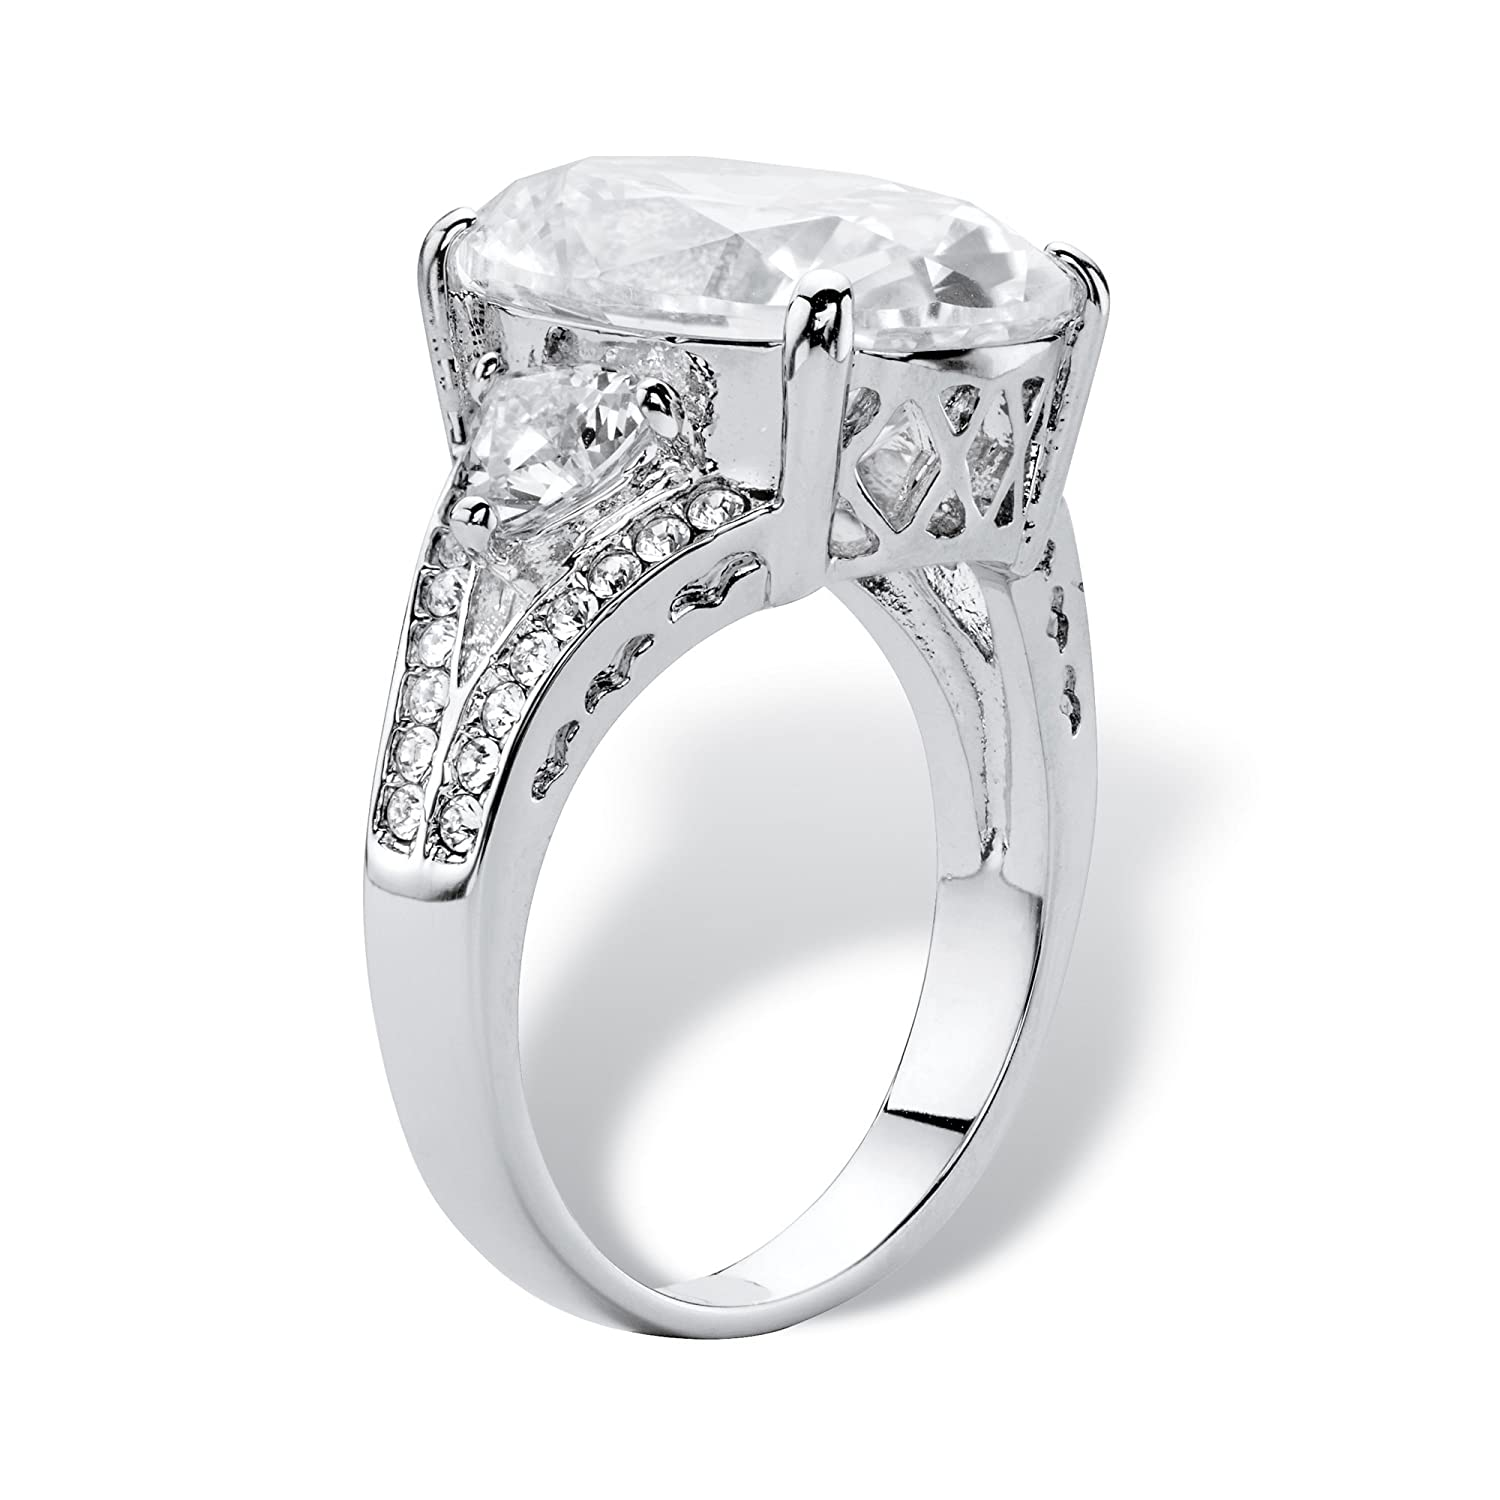 Palm Beach Jewelry Platinum Plated Oval Cut Cubic Zirconia and Crystal Ring